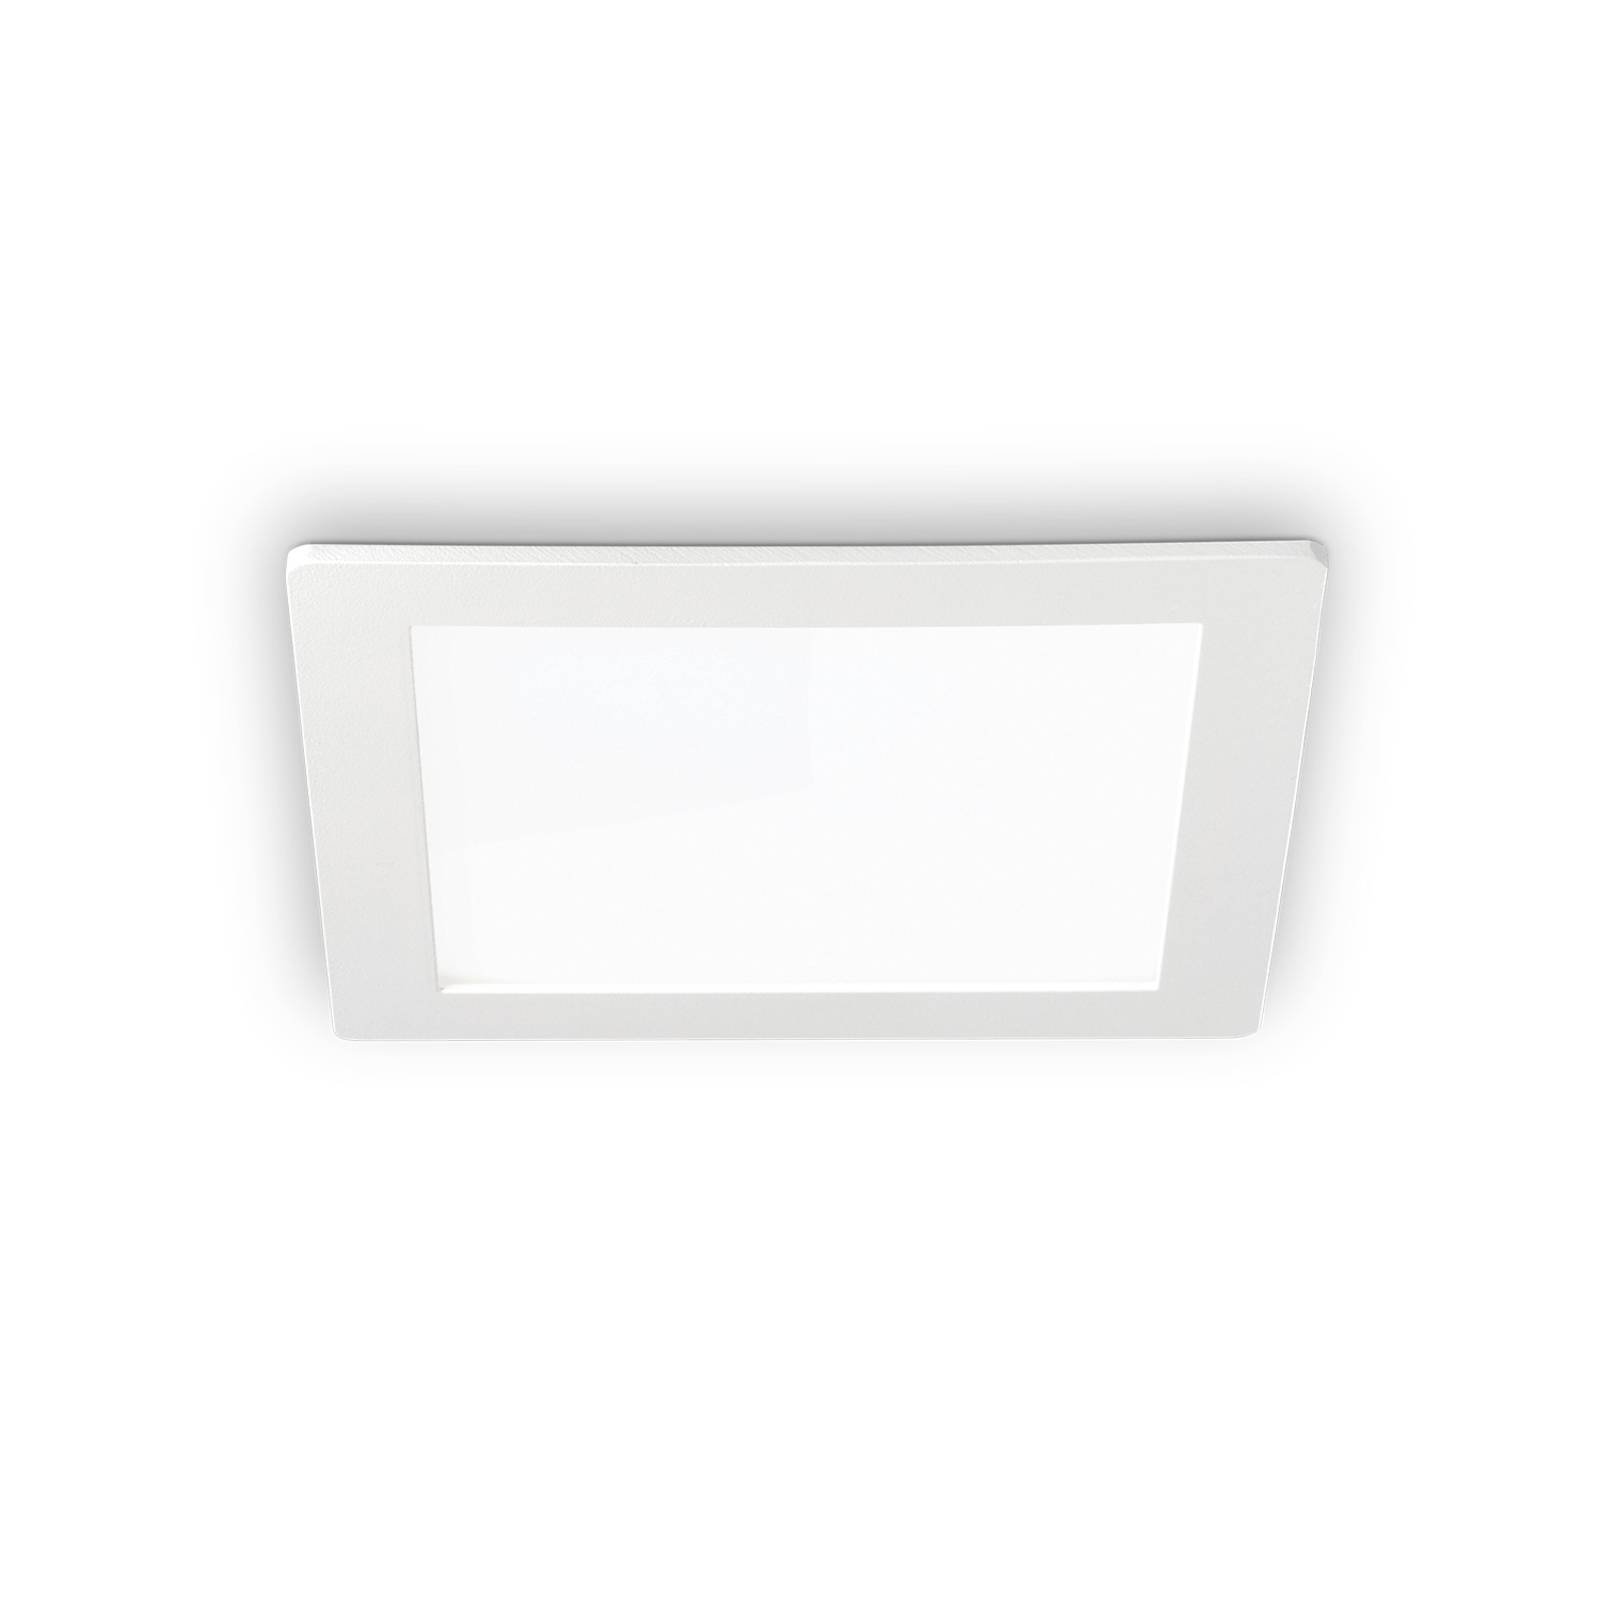 LED-taklampe Groove square 11,8x11,8 cm